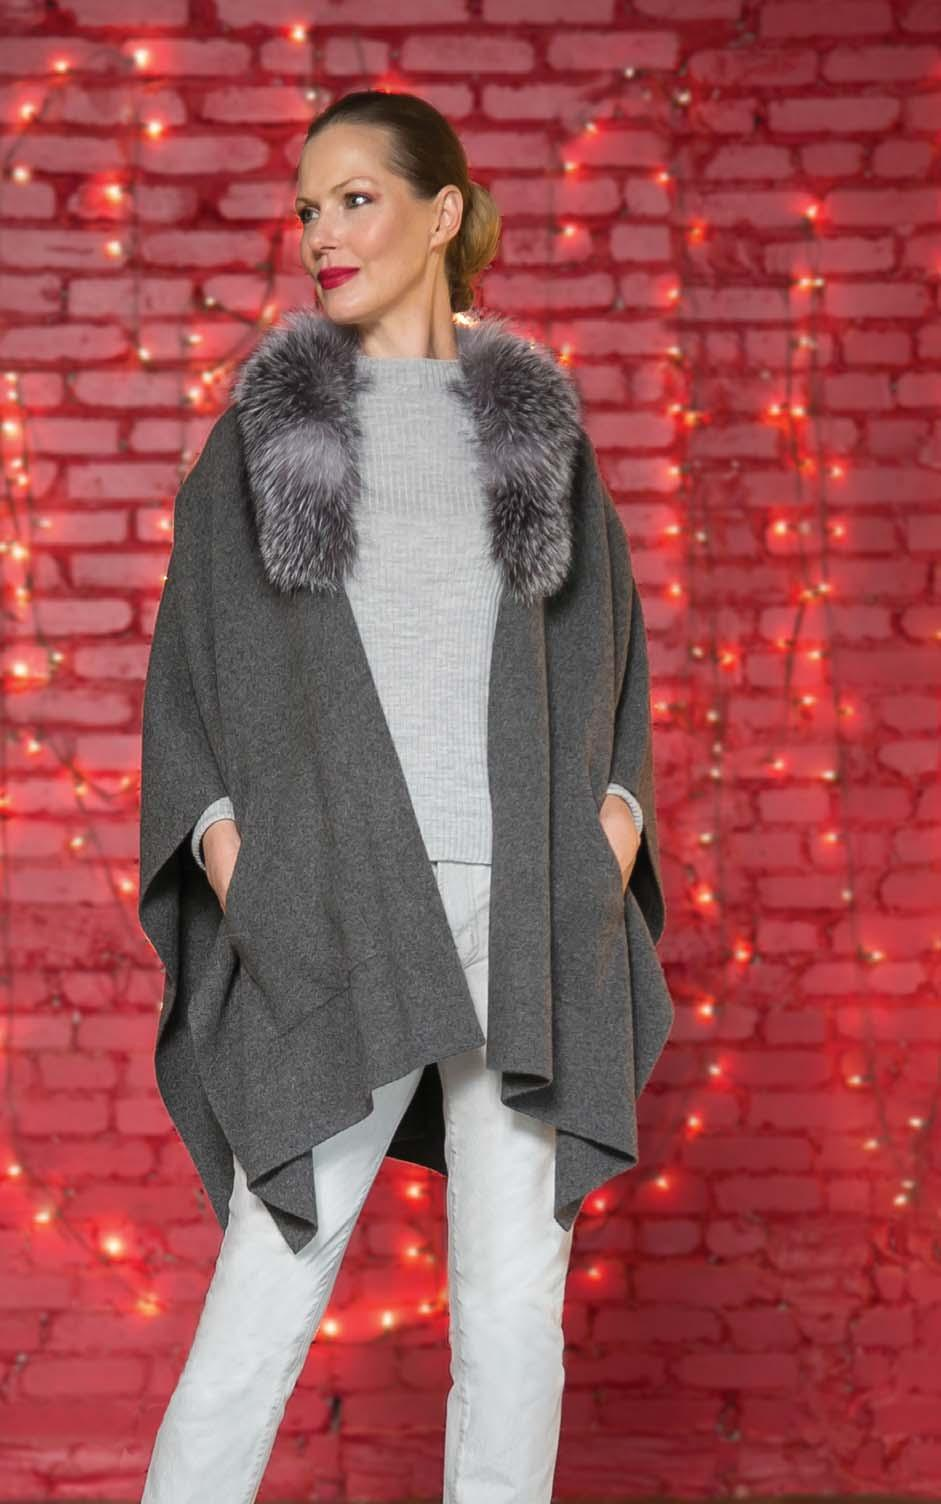 SOFIA CASHMERE 100% cashmere knit wrap with fox